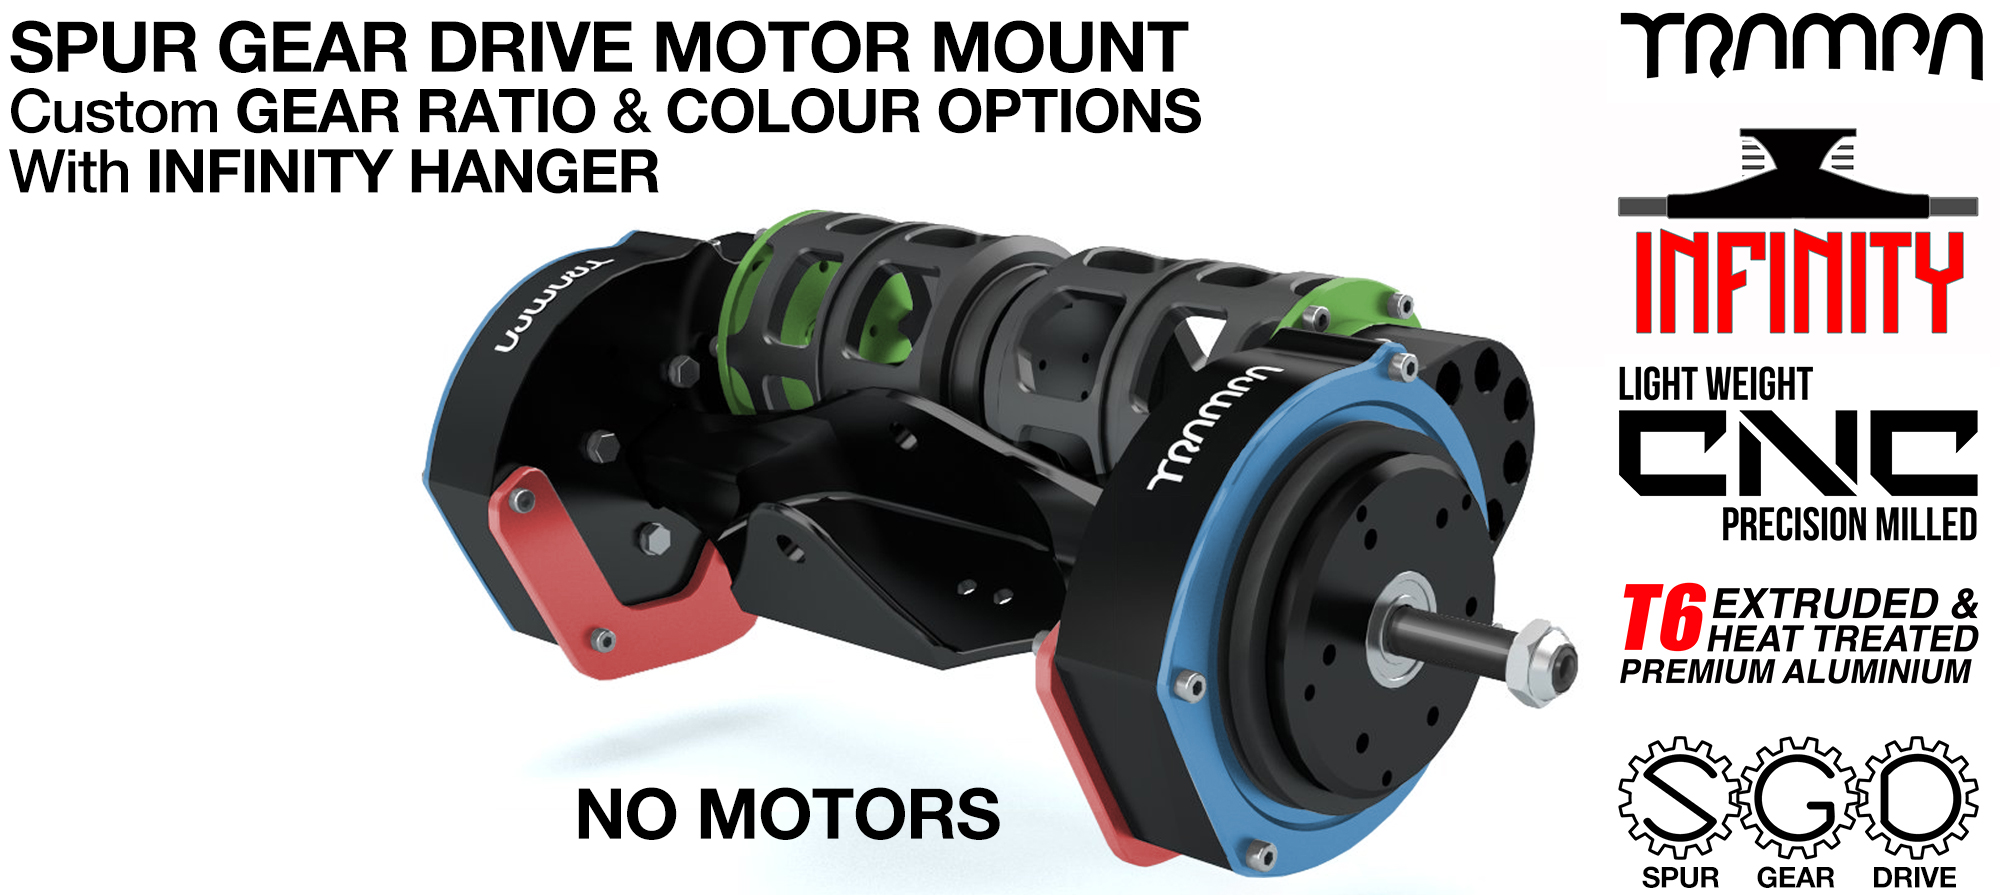 Mountainboard EXTERNAL Spur Gear Drive TWIN Motor Mounts & INFINITY Hanger